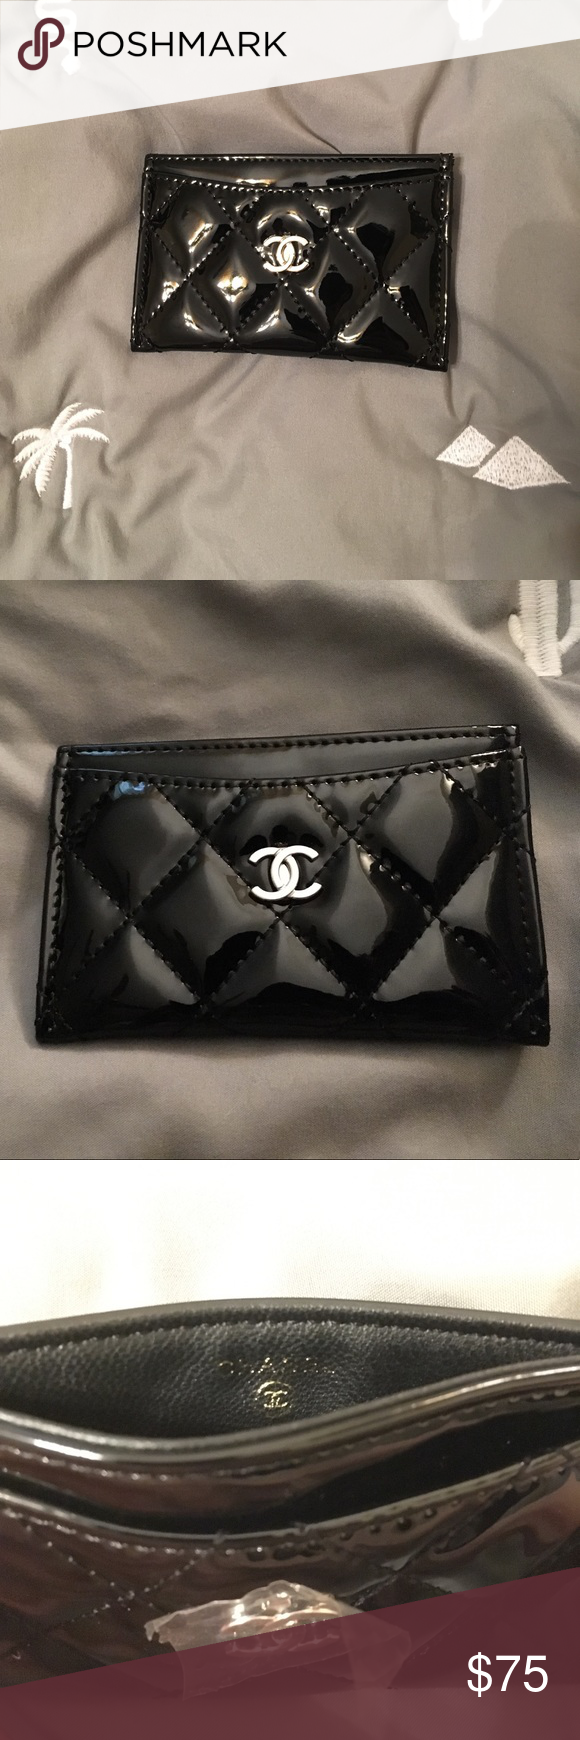 28d97883c23bbf Patent Chanel VIP gift card holder Chanel beaute beauty counter gift, does  not include box